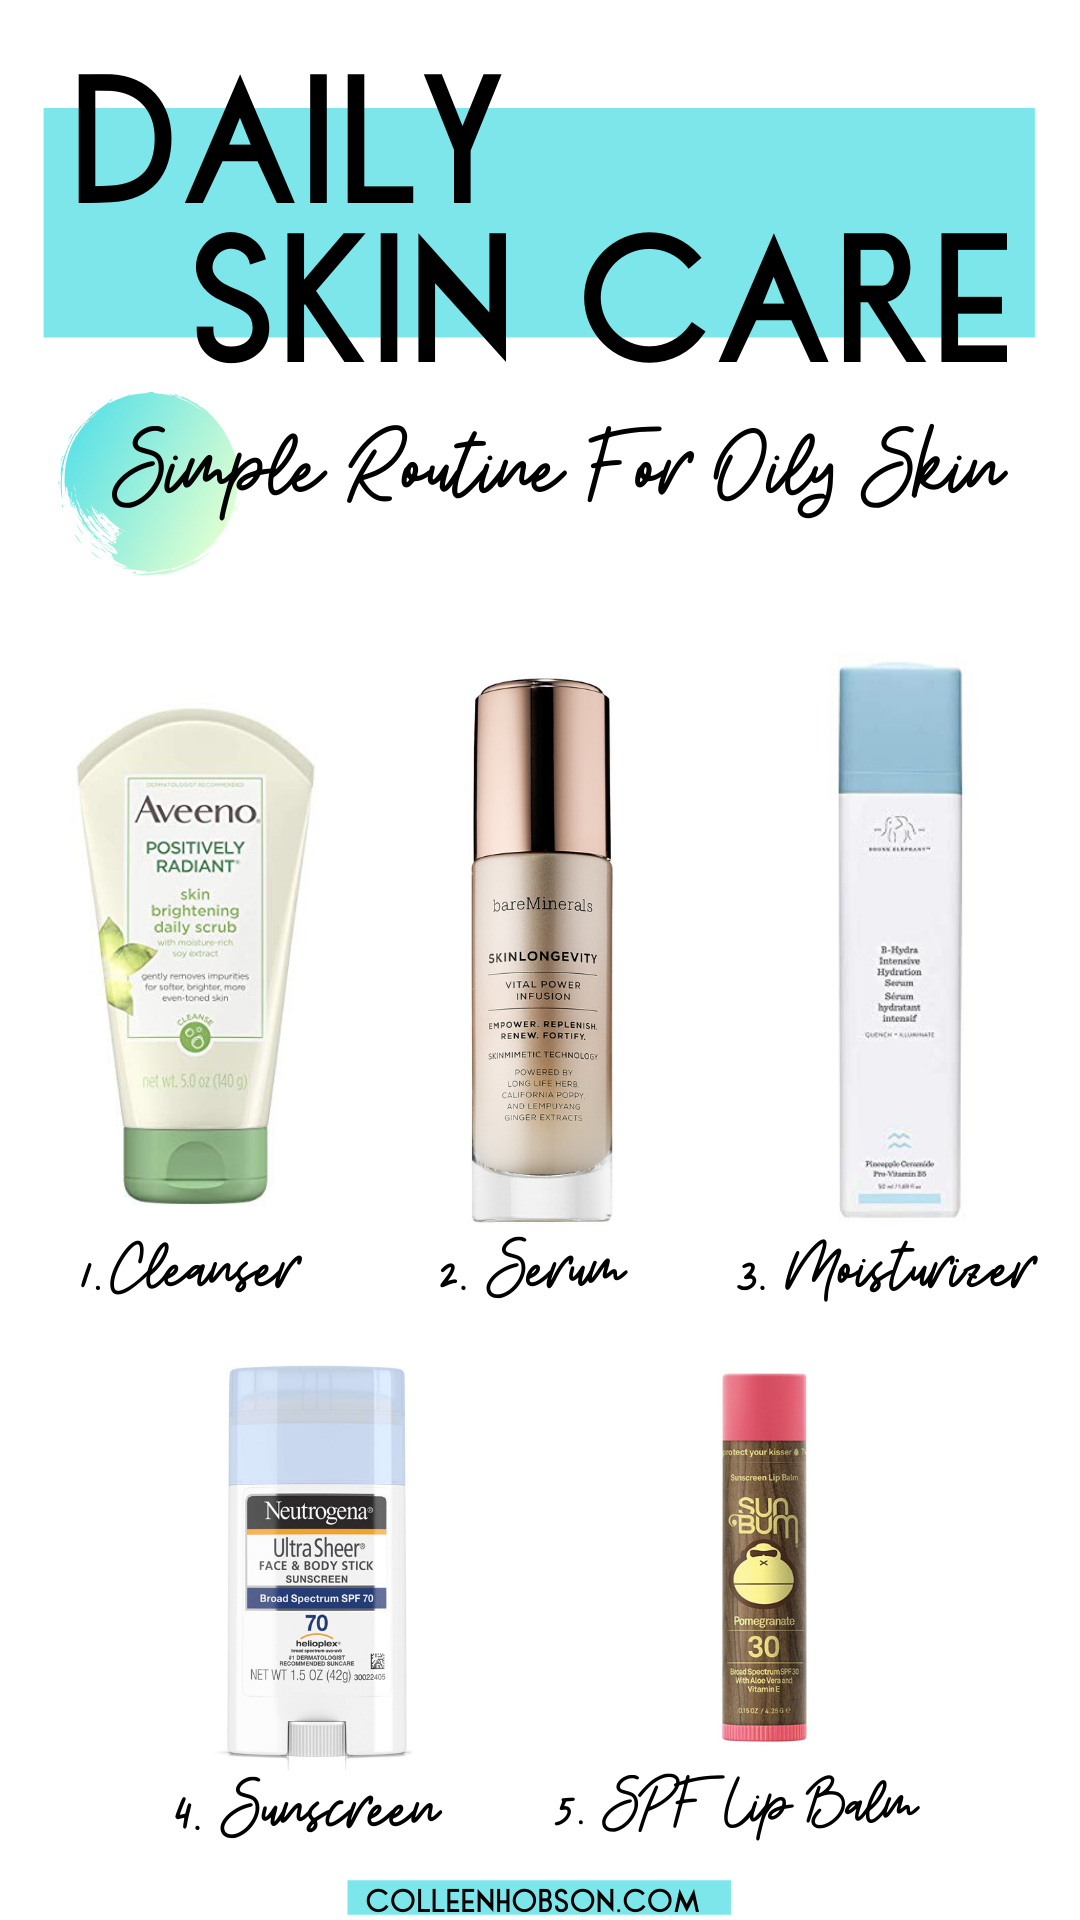 Daily Skincare Routine For Oily Skin Colleen Hobson In 2020 Treating Oily Skin Affordable Skin Care Routine Daily Skin Care